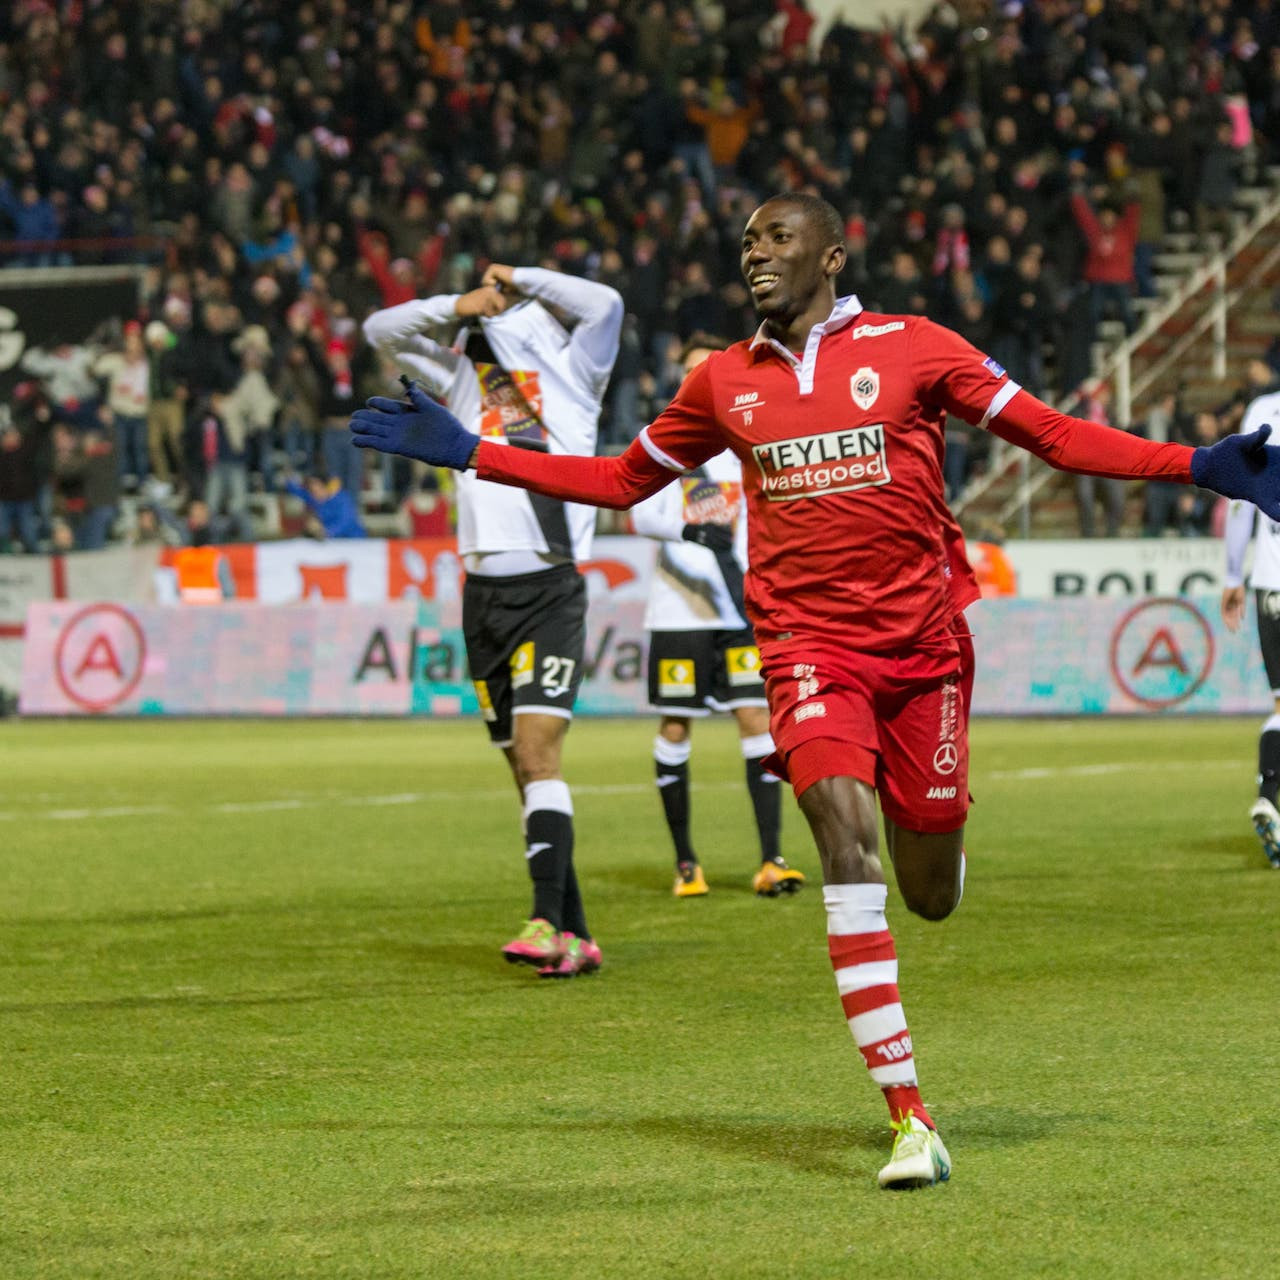 VIDEO: Watch William Owusu's sublime goal and assist as Antwerp beat Kortrijk